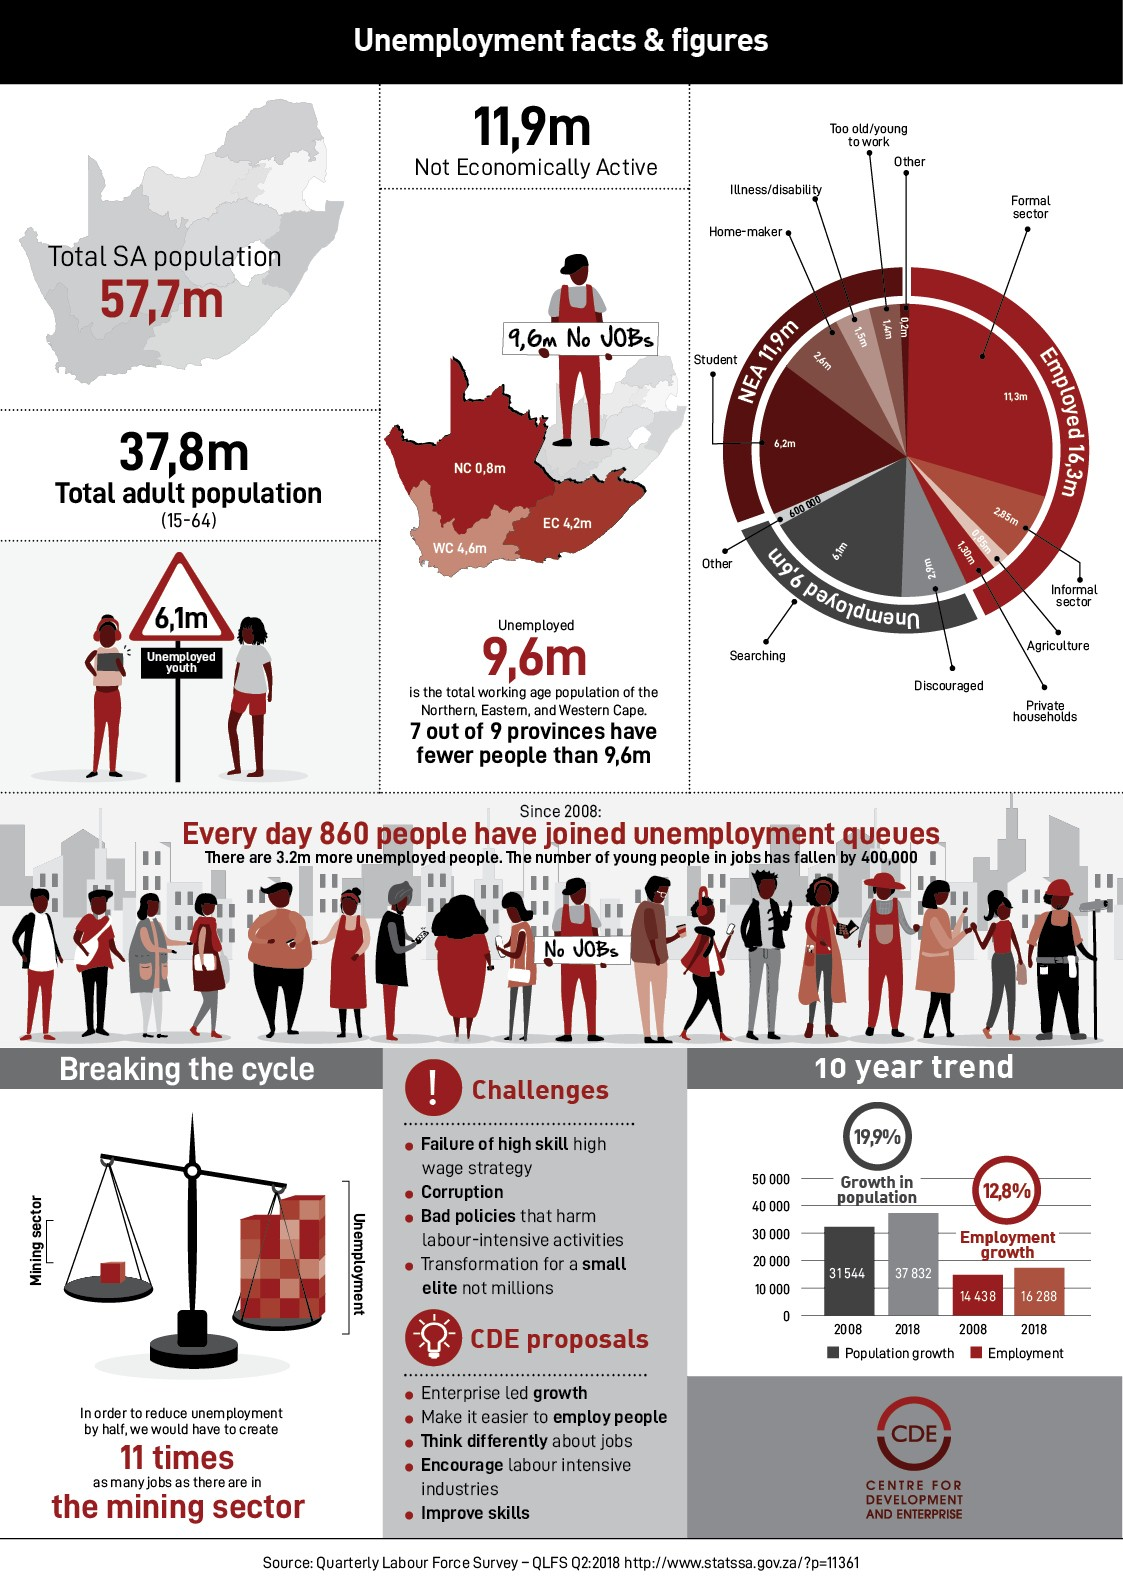 CDE Unemployment facts and figures infographic